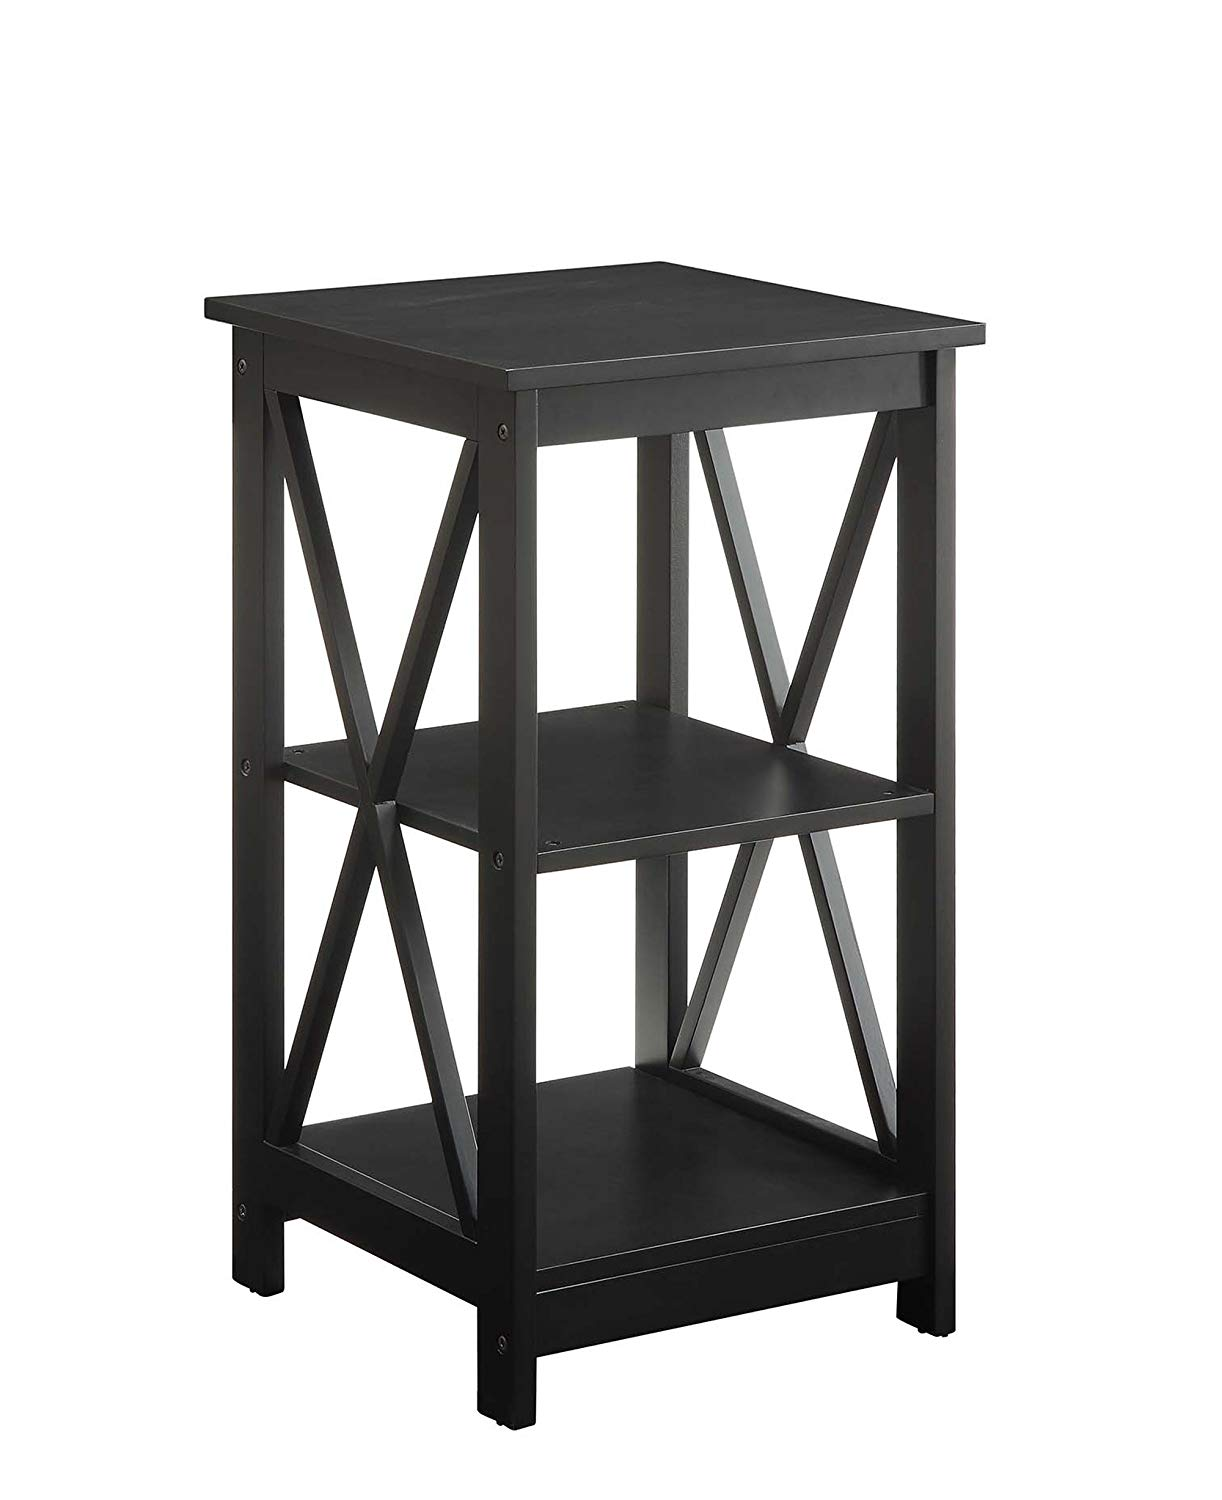 convenience concepts oxford end table black kitchen storage accent room essentials dining target big lots tables bedside dresser factory direct furniture high mouse wired round